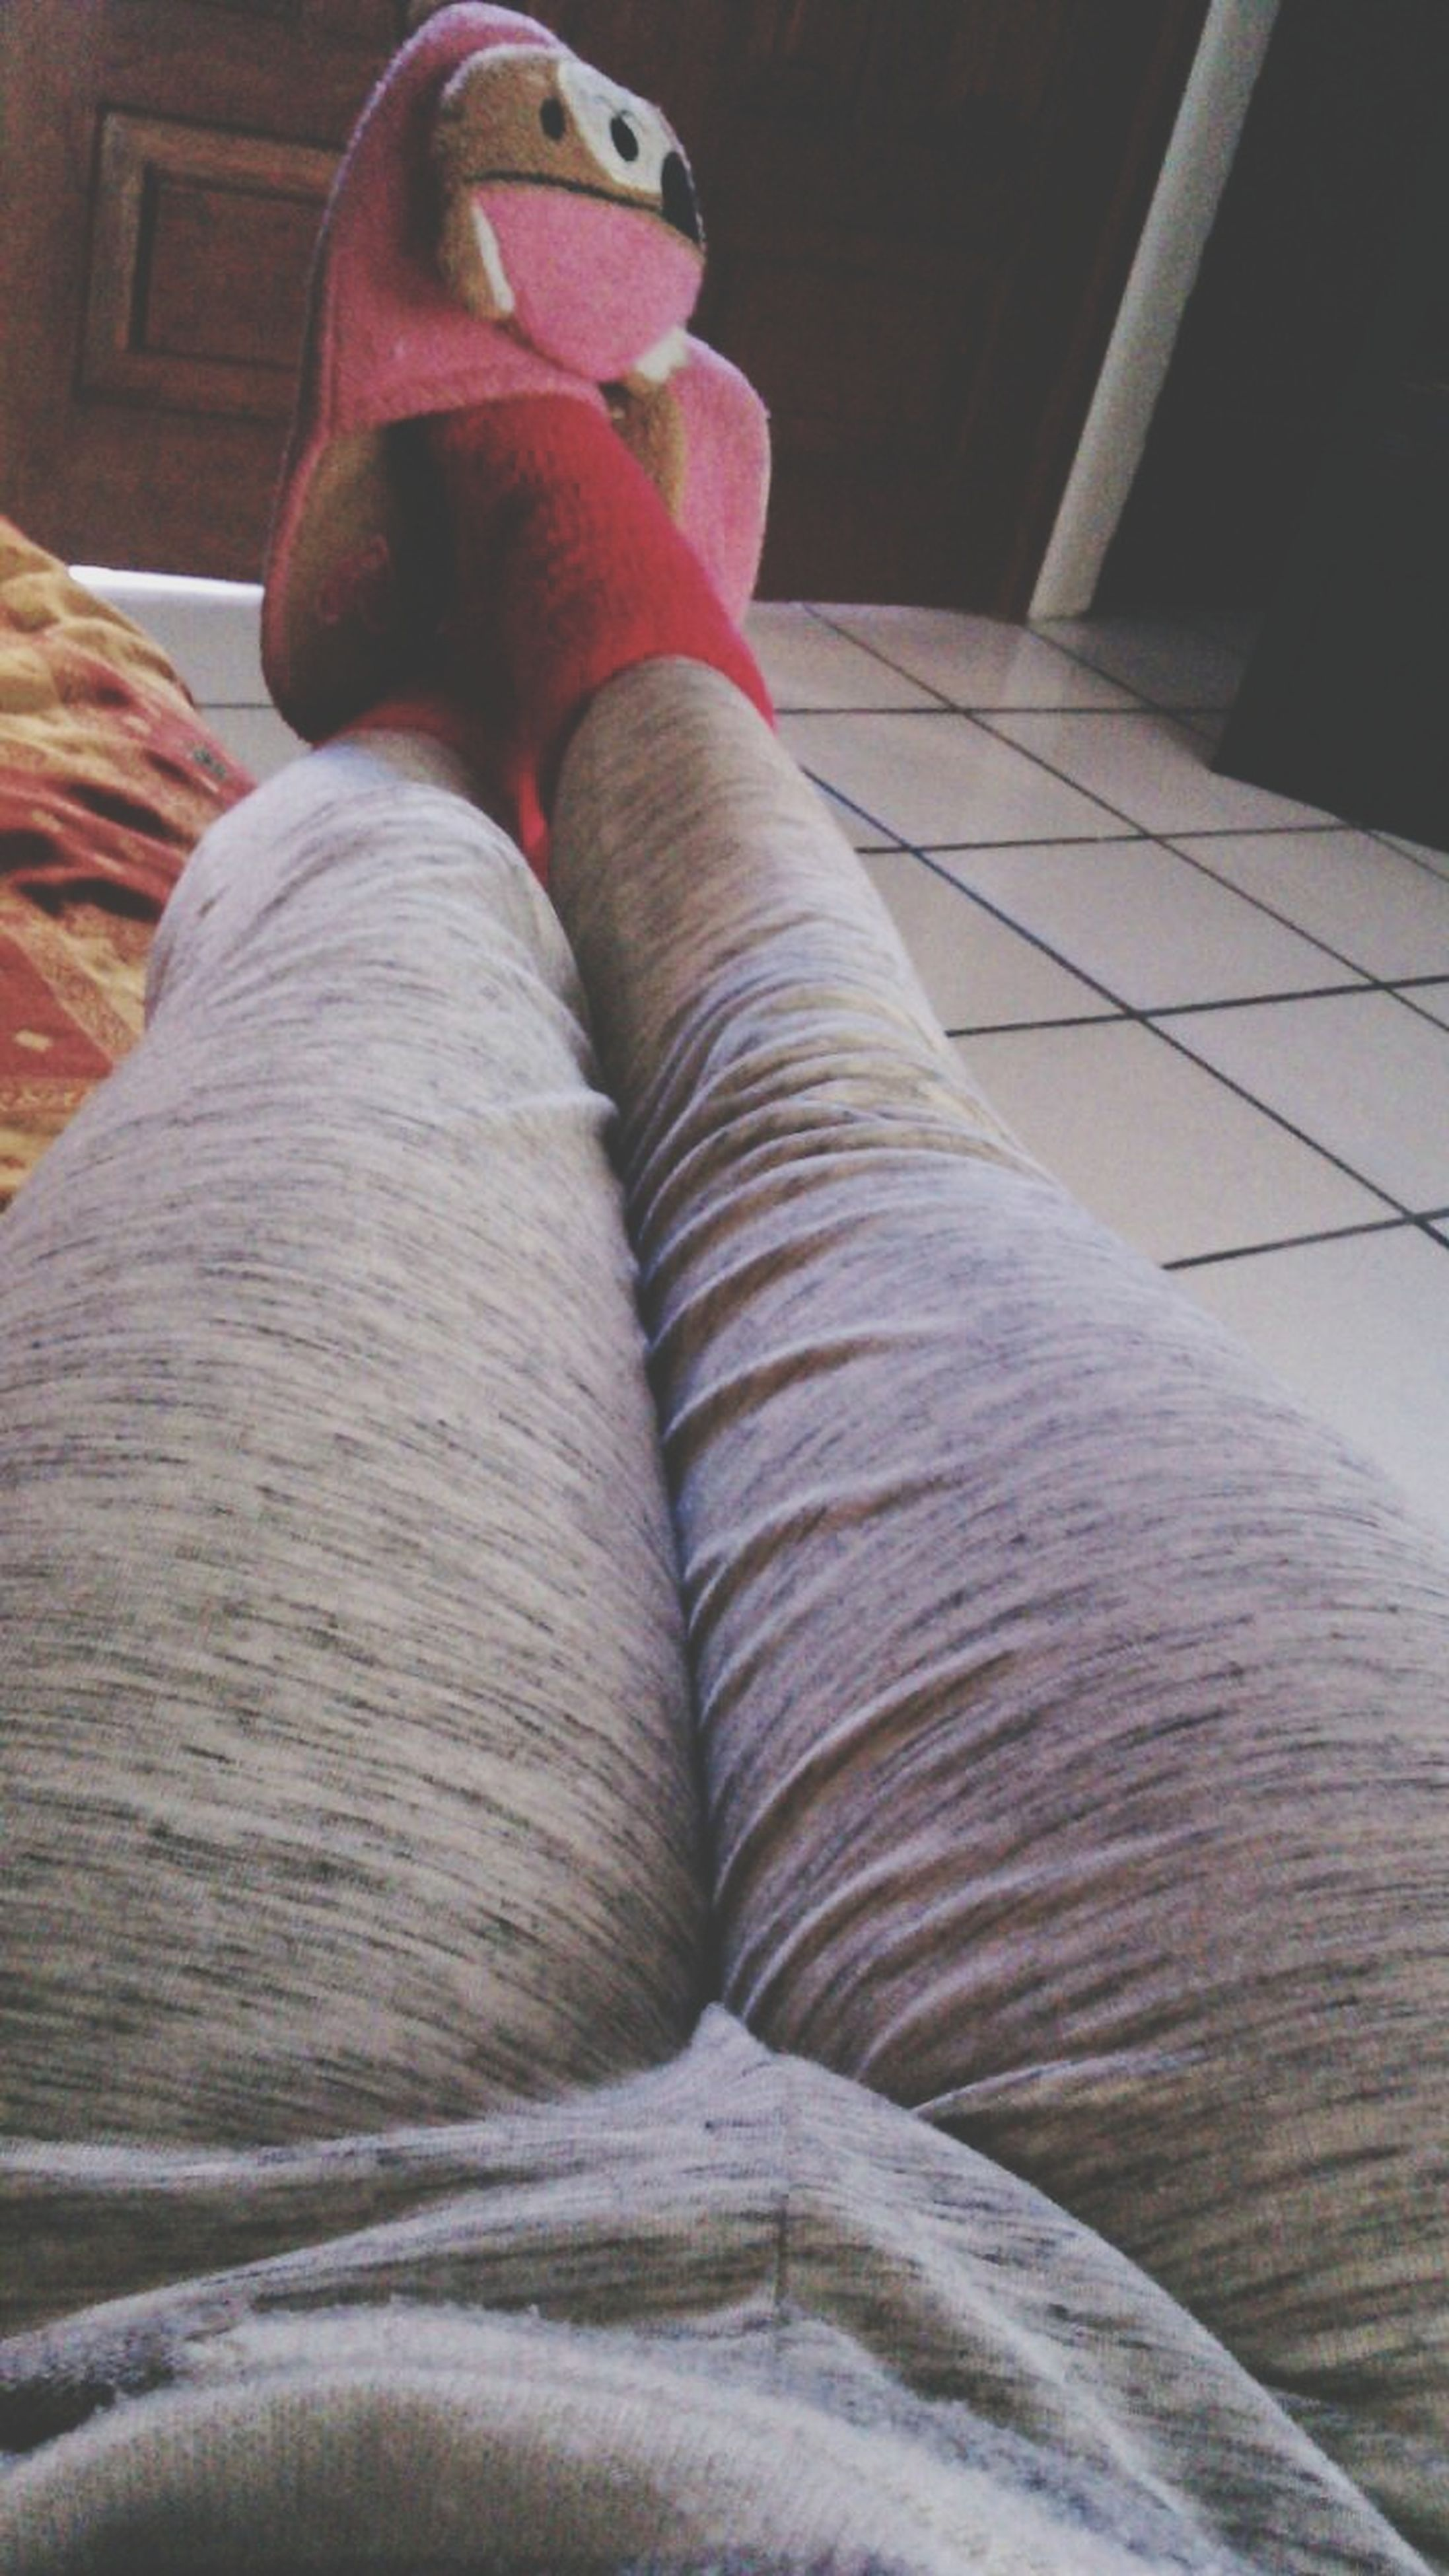 indoors, low section, person, relaxation, bed, human foot, sitting, lifestyles, home interior, part of, barefoot, close-up, jeans, shoe, personal perspective, textile